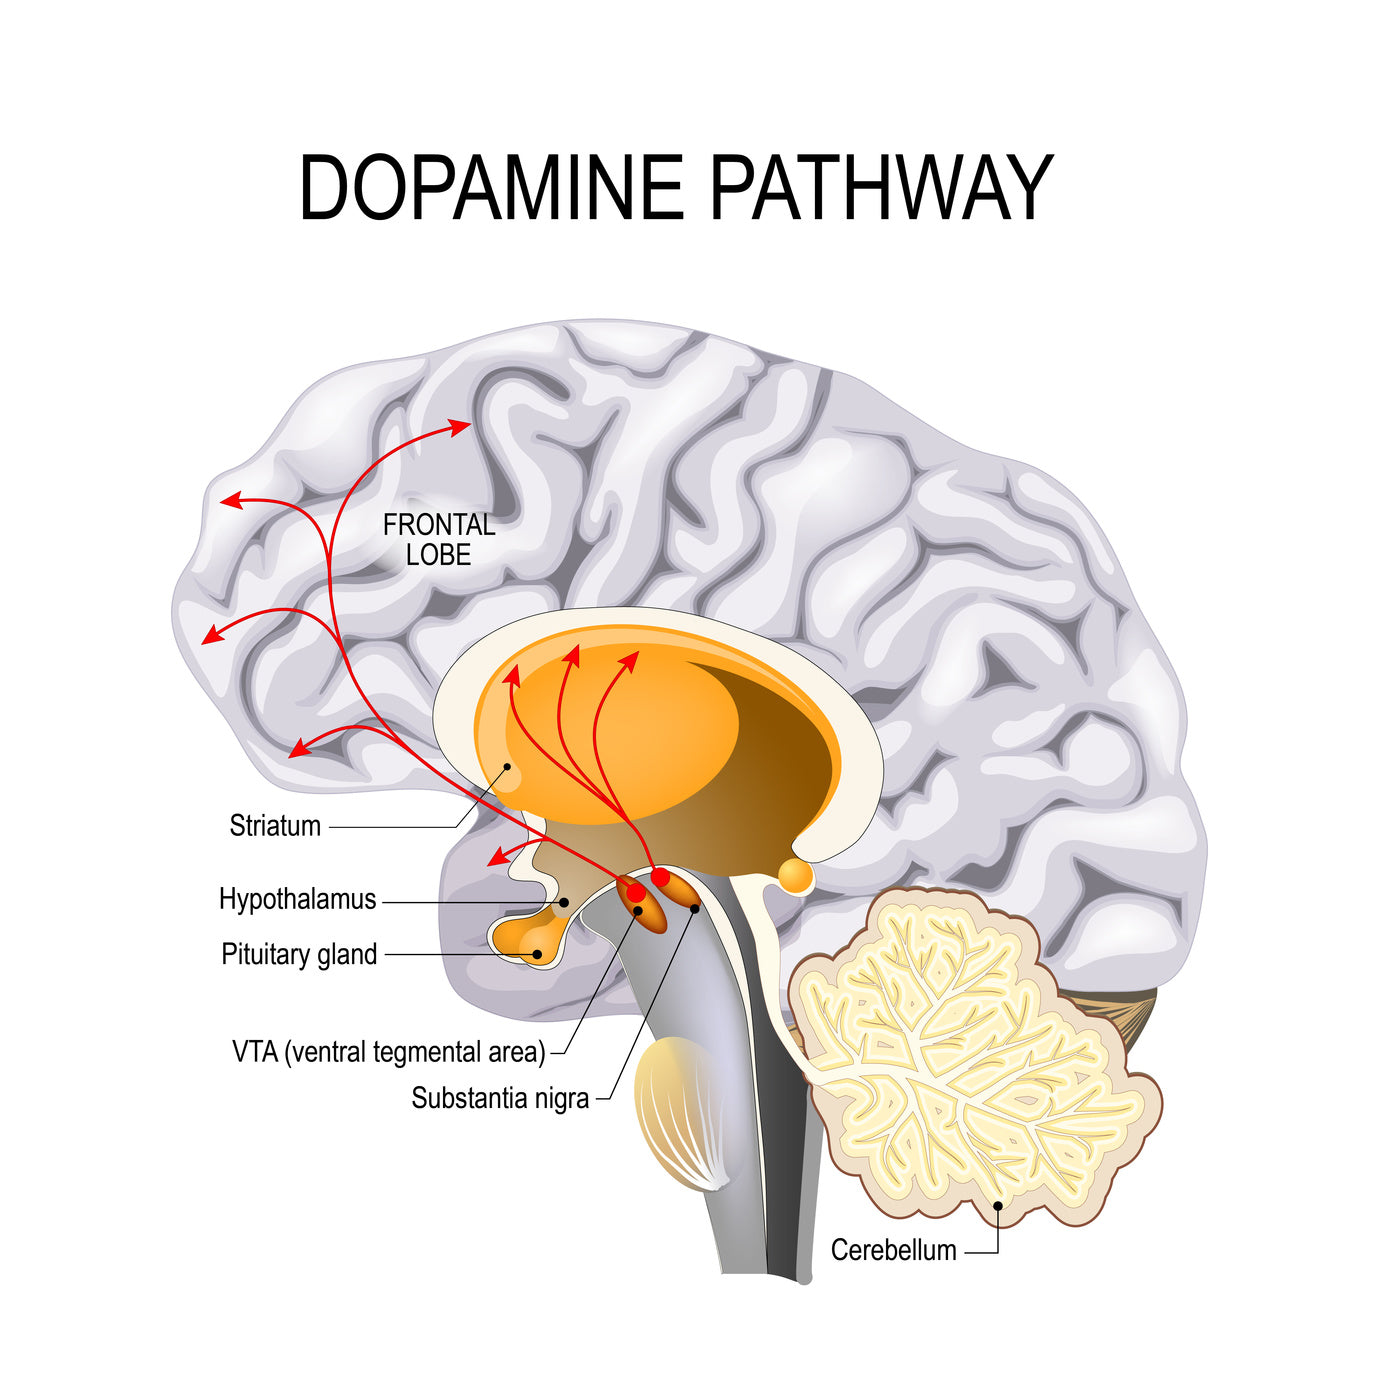 Nootropics for dopamine can help promote its production in the brain.